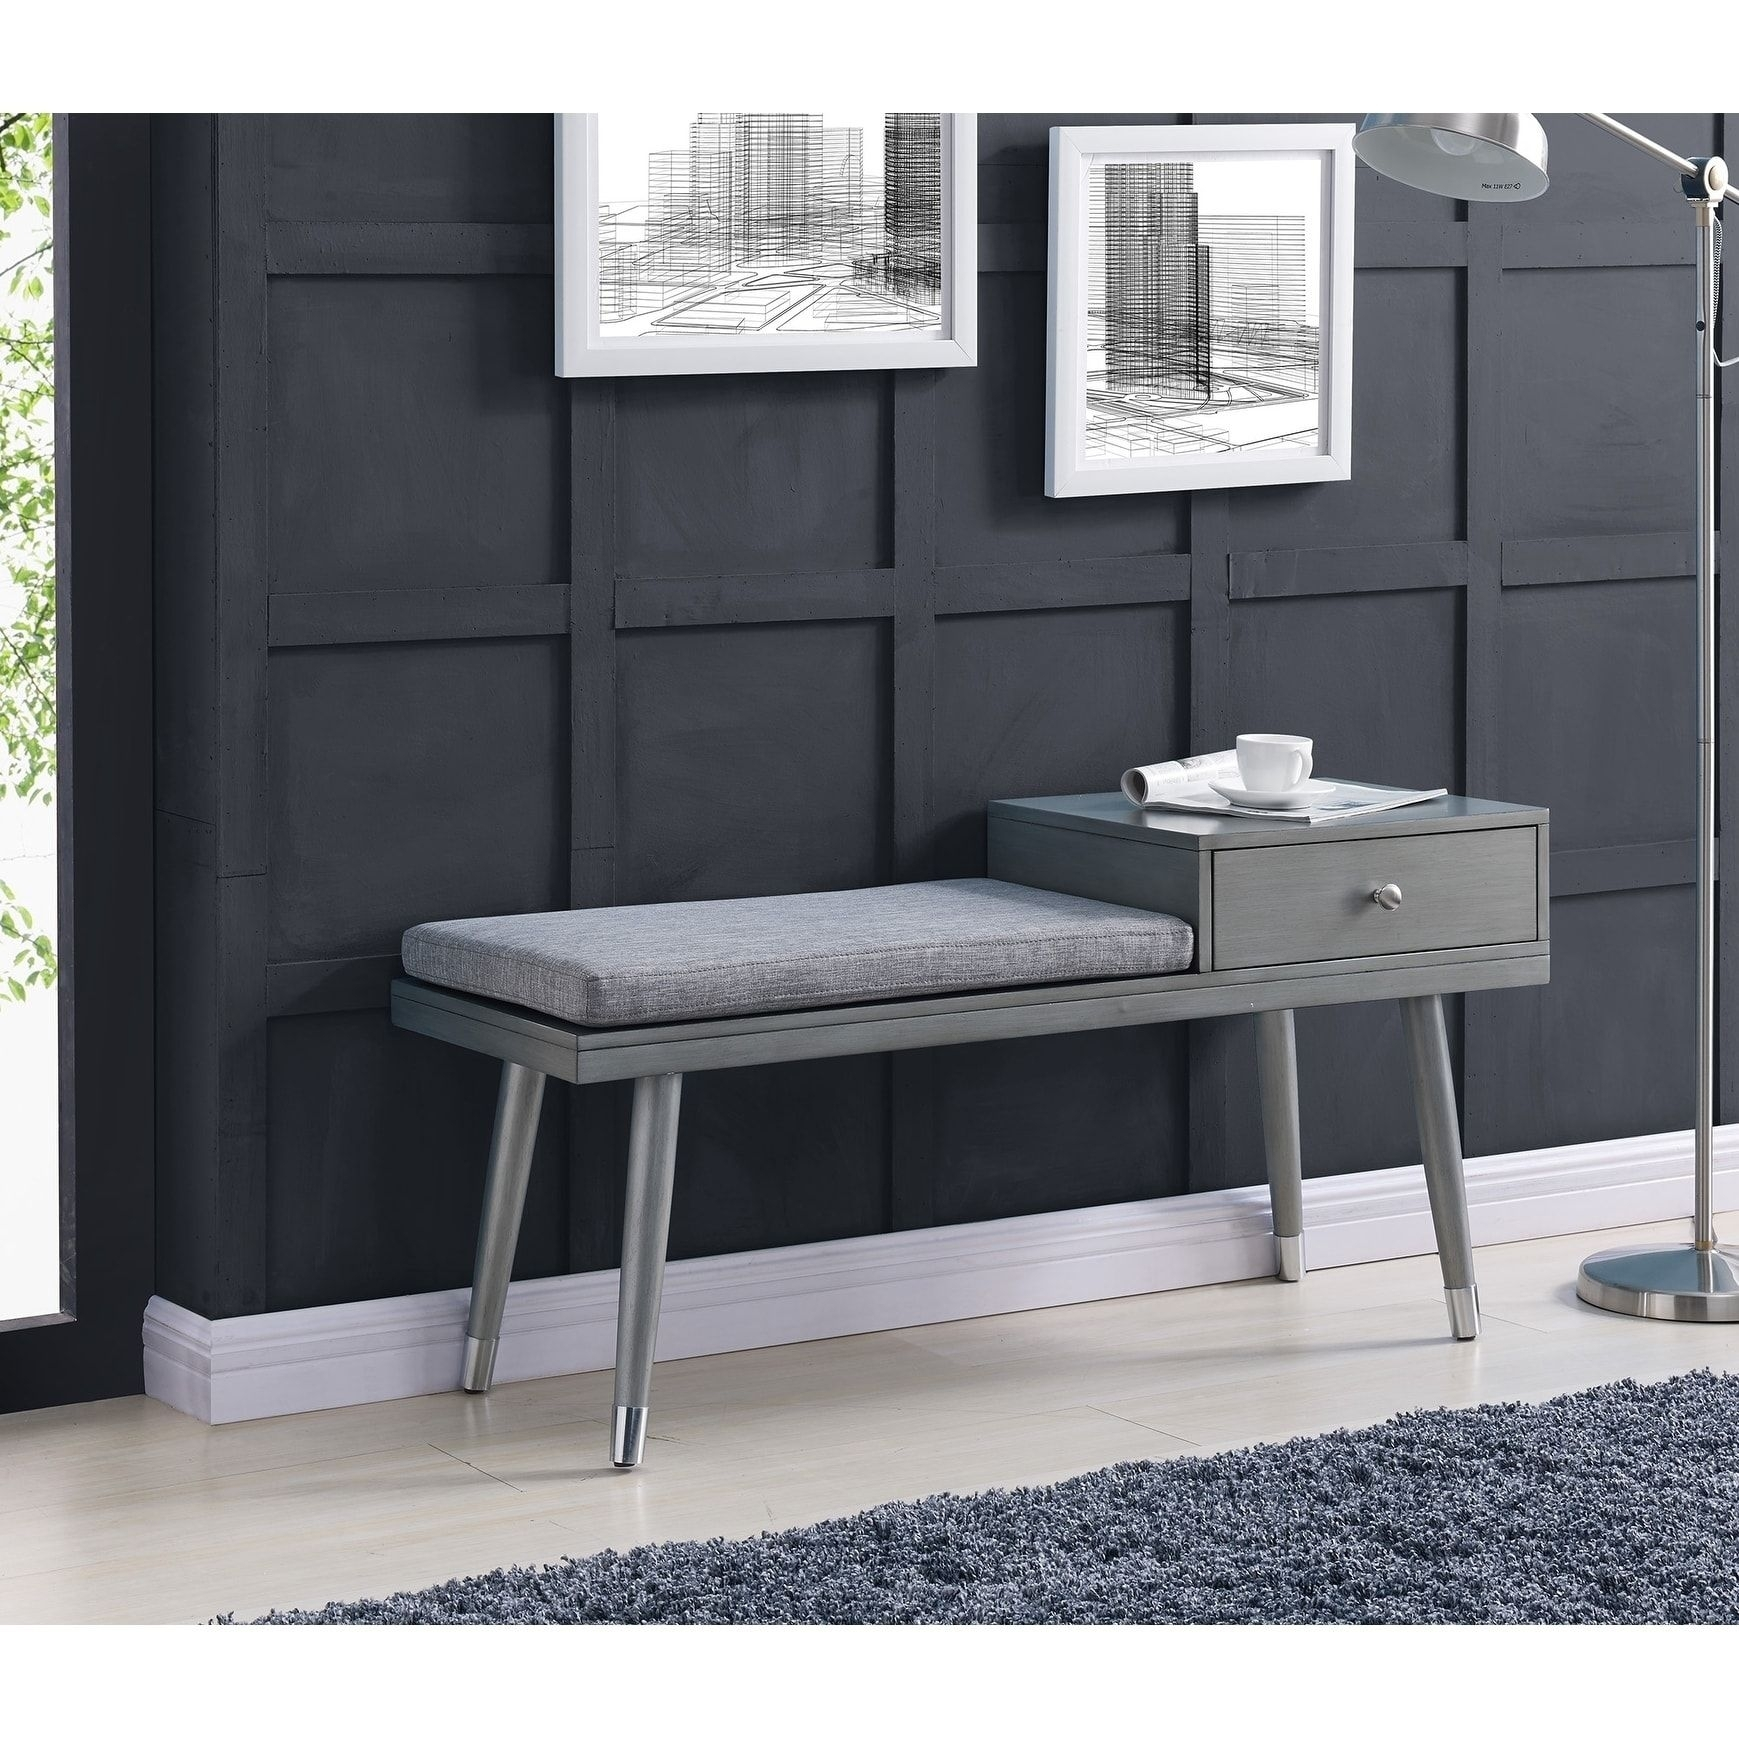 Elba Grey Wood, Fabric Bench With Drawer (Brown) | Elba, Bench And throughout Elba Ottoman-Coffee Tables (Image 16 of 30)